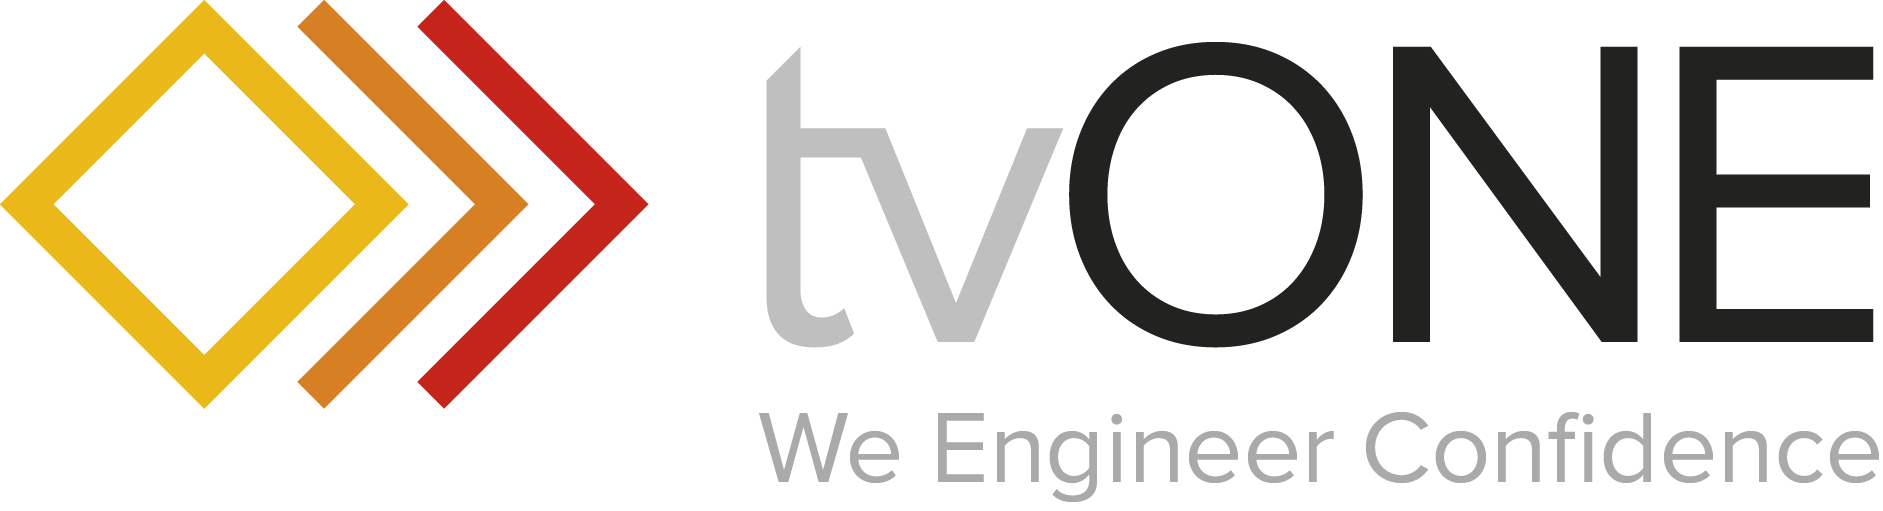 tv one logo png